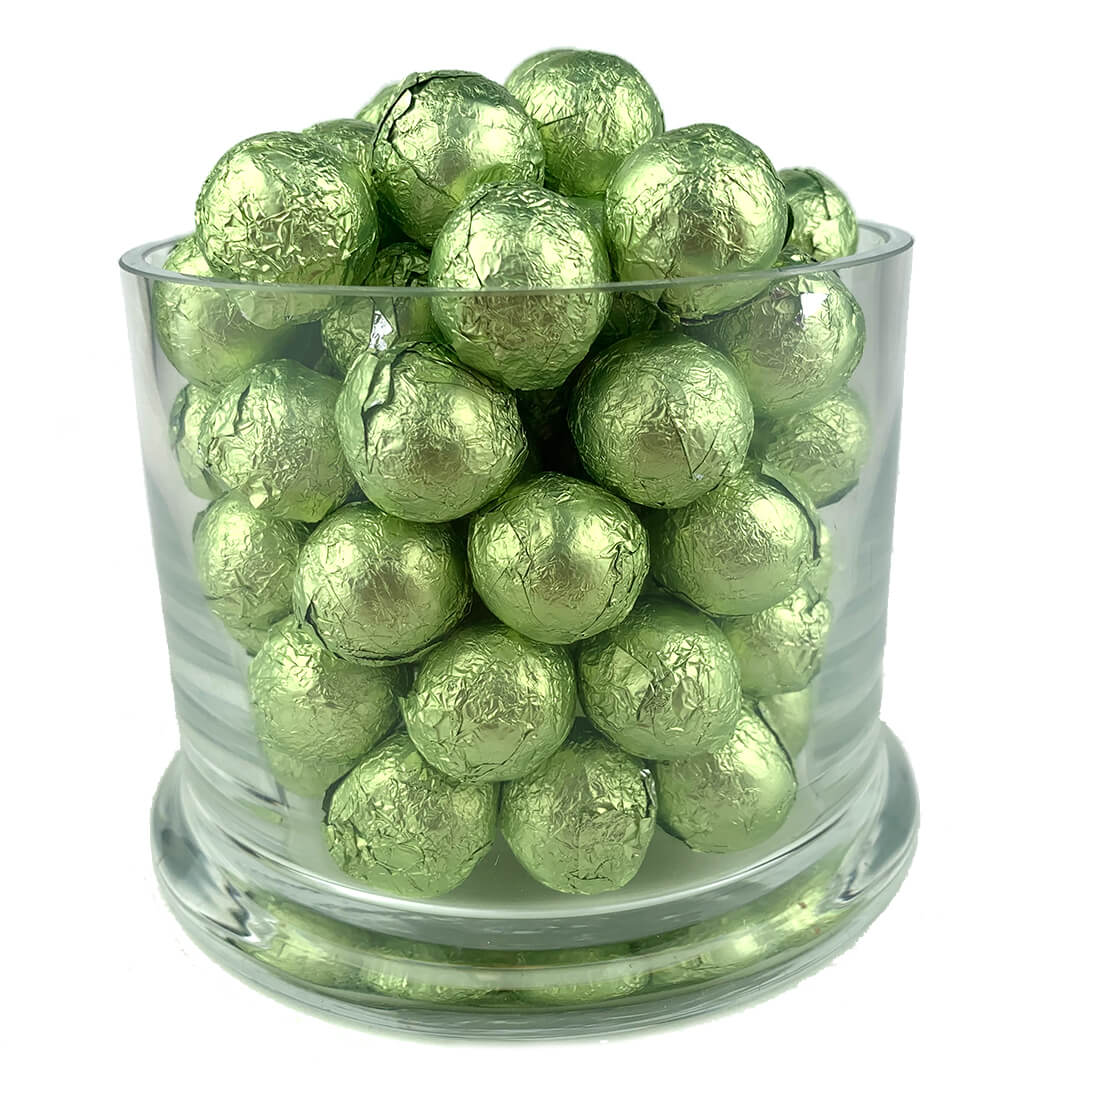 Leaf Green Foiled Wrapped Chocolate Balls 2 lb Bag